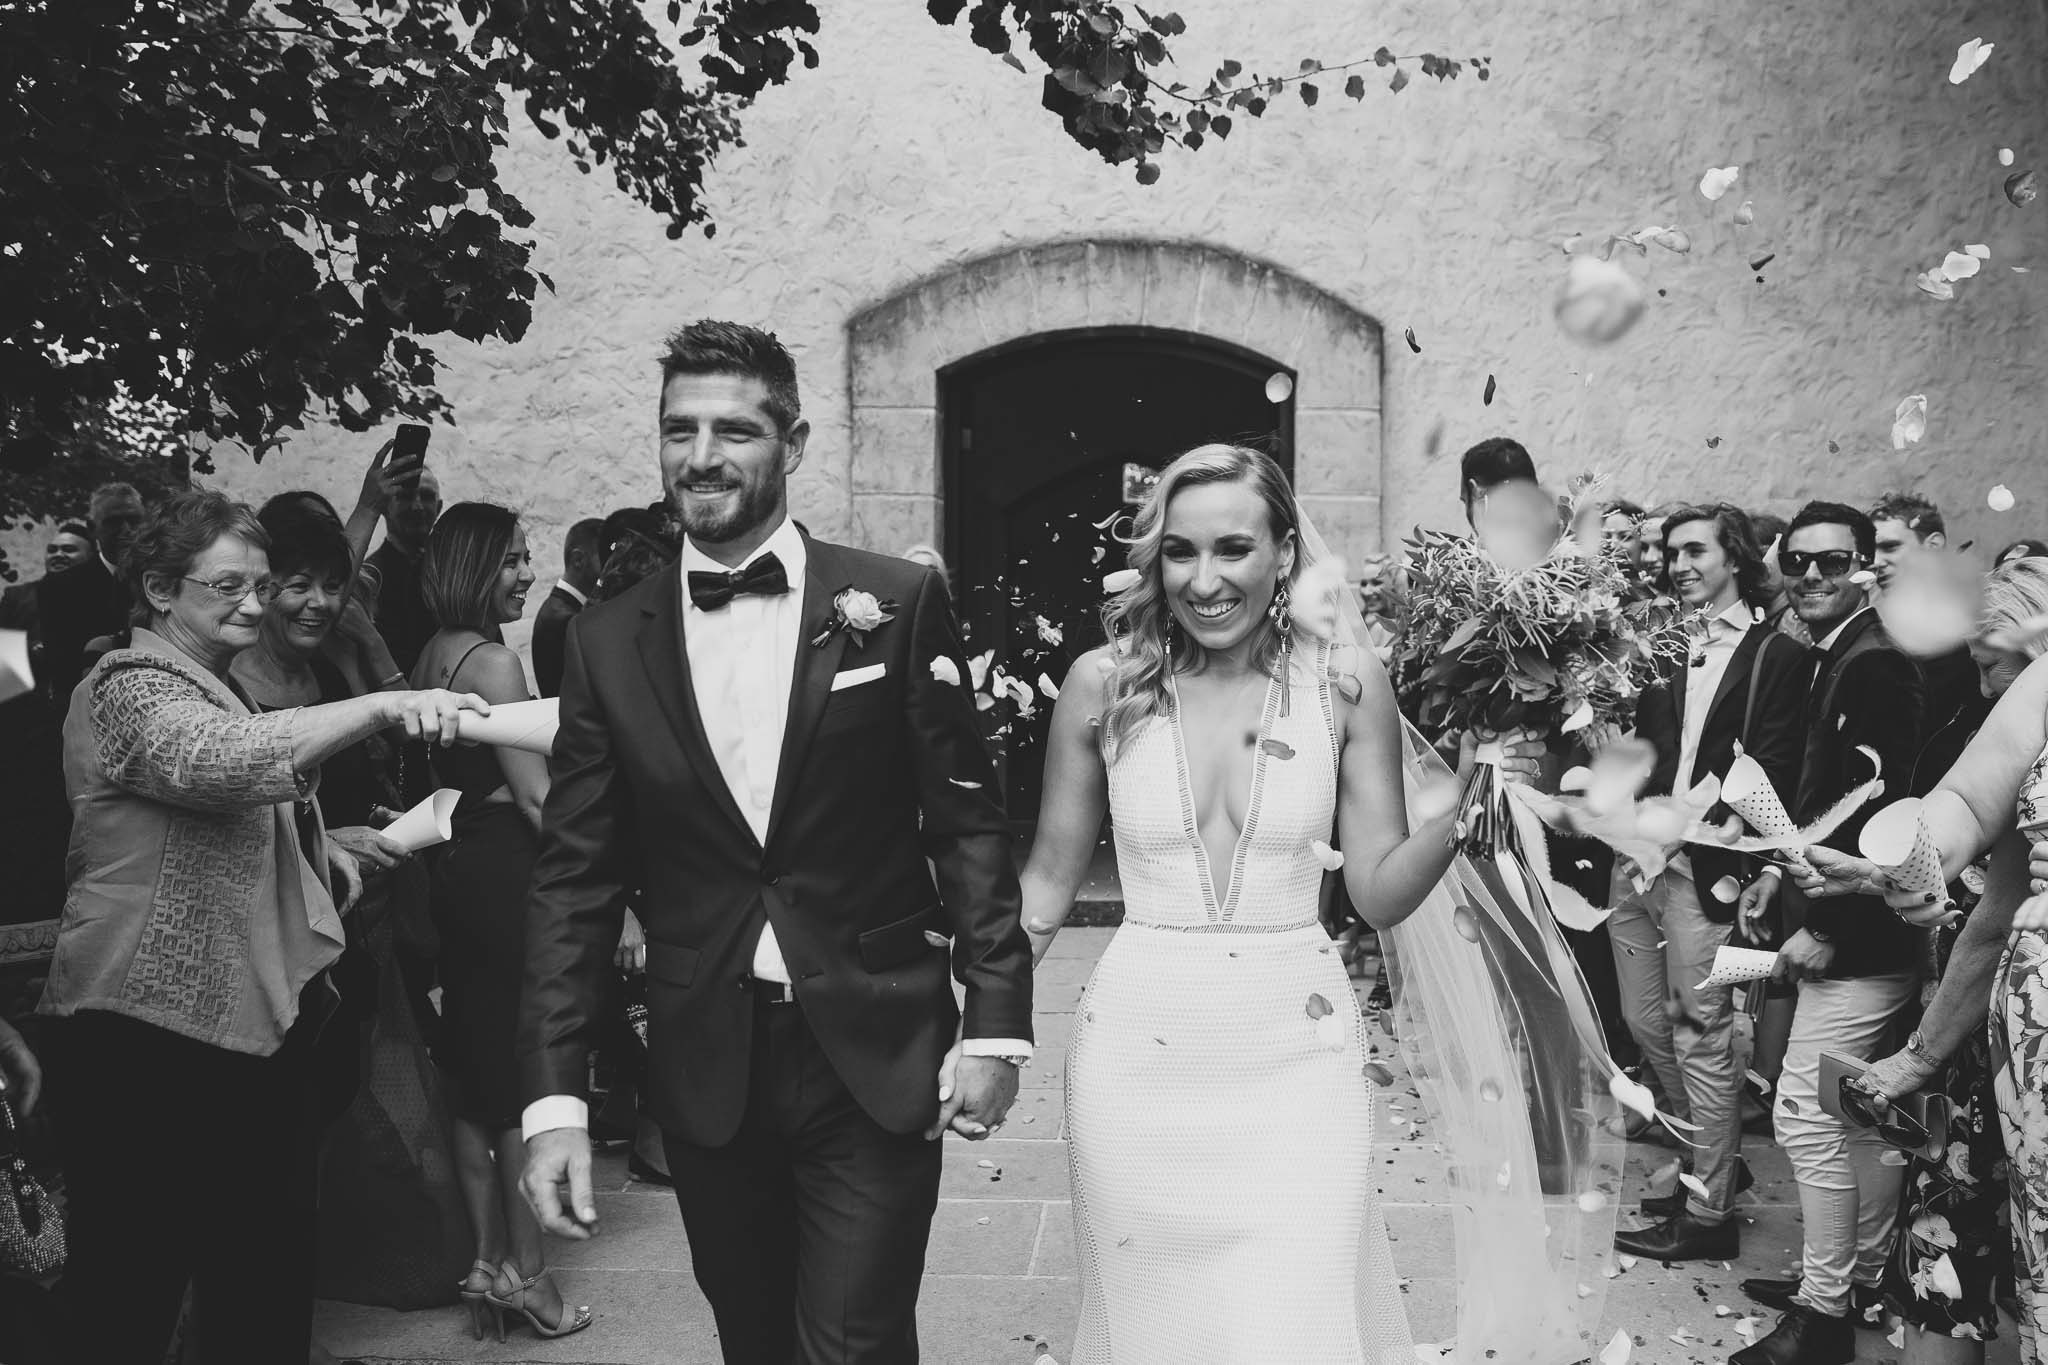 SORAYA + TRENT - Steph and The Eventurer team were absolutely amazing! Our wedding was above and beyond our expectations. Steph turned our amazing venue at Stones of the Yarra Valley into a beautiful, magical, modern garden party dream.A beautiful person to work with, Steph is very talented creatively but also personally. Steph understood our needs, personalities, our budget and refined our vision and dream perfectly.Steph thought of everything... every little detail from flowers, to personalised stationary, to the most incredible entry and even heartfelt momentum's for passed loved ones.Steph's professionalism, knowledge, organisation and creativeness allowed the lead up to our wedding day to be completely stress free.Every little detail was extremely appreciated by us and all our loved ones and guests. We had so many compliments, and our concrete entrance/seating chart was out of this world amazing.Thank you again Steph and The Eventurer team, it was wonderful to work with you, I can't wait to see more of your amazing creations.– Soraya + Trent 2018Photo: Jess Nicholls